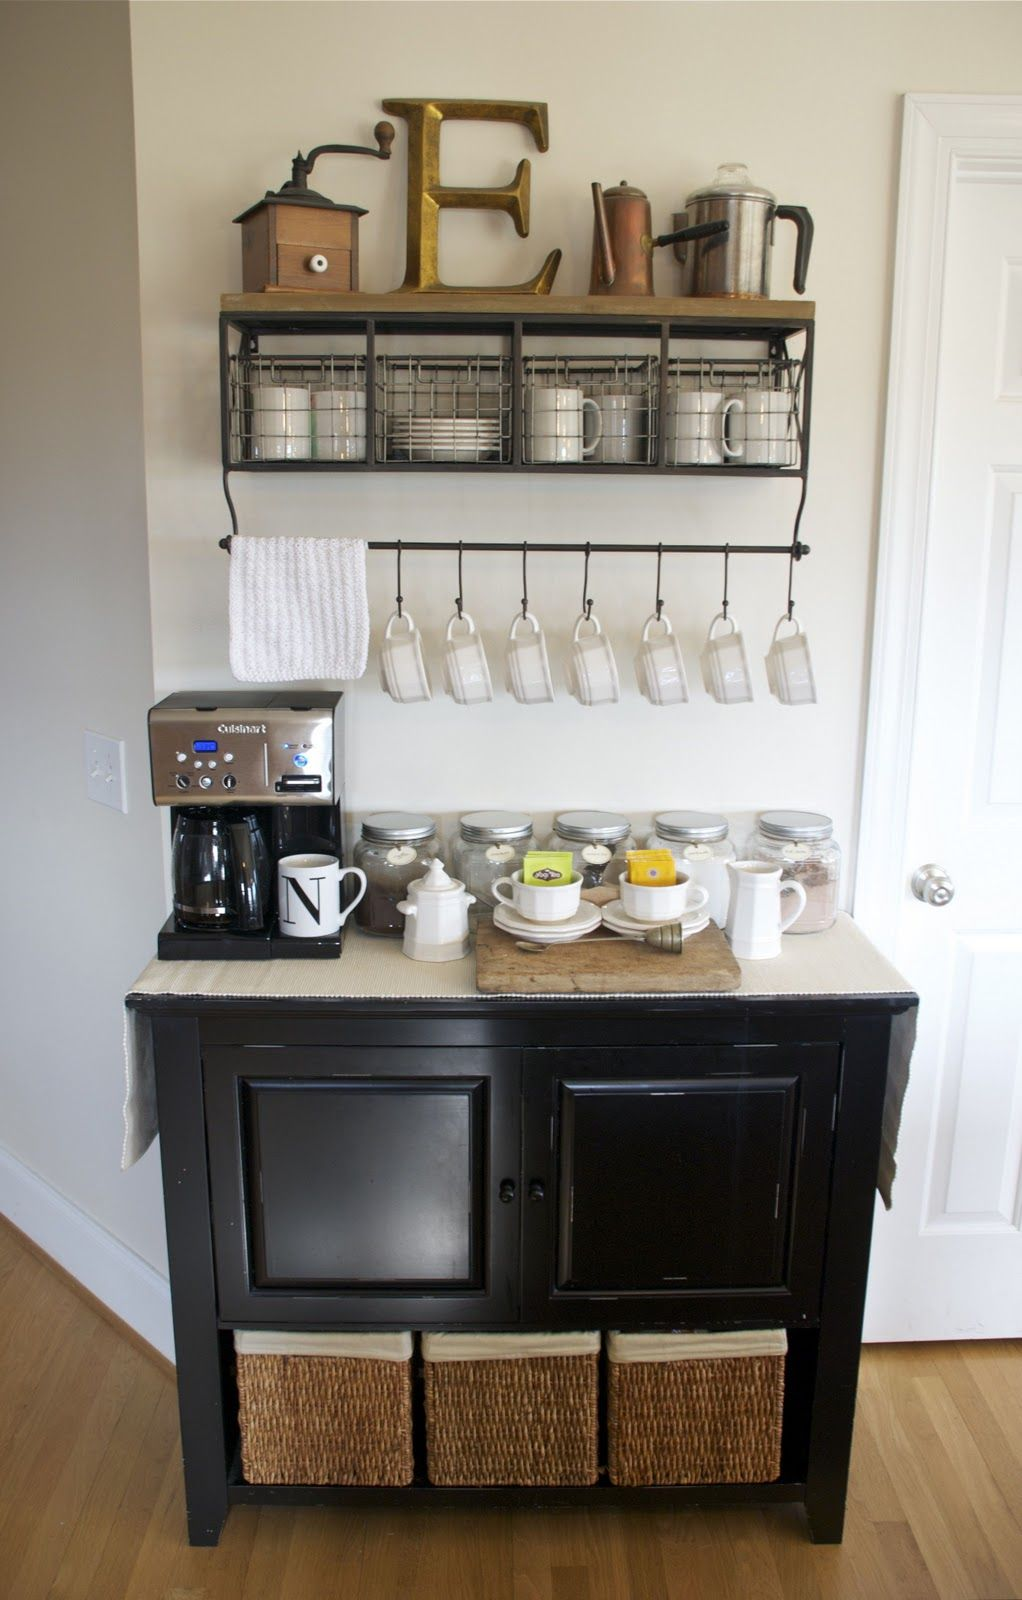 Every home needs a coffee station ium totally gonna copy this idea